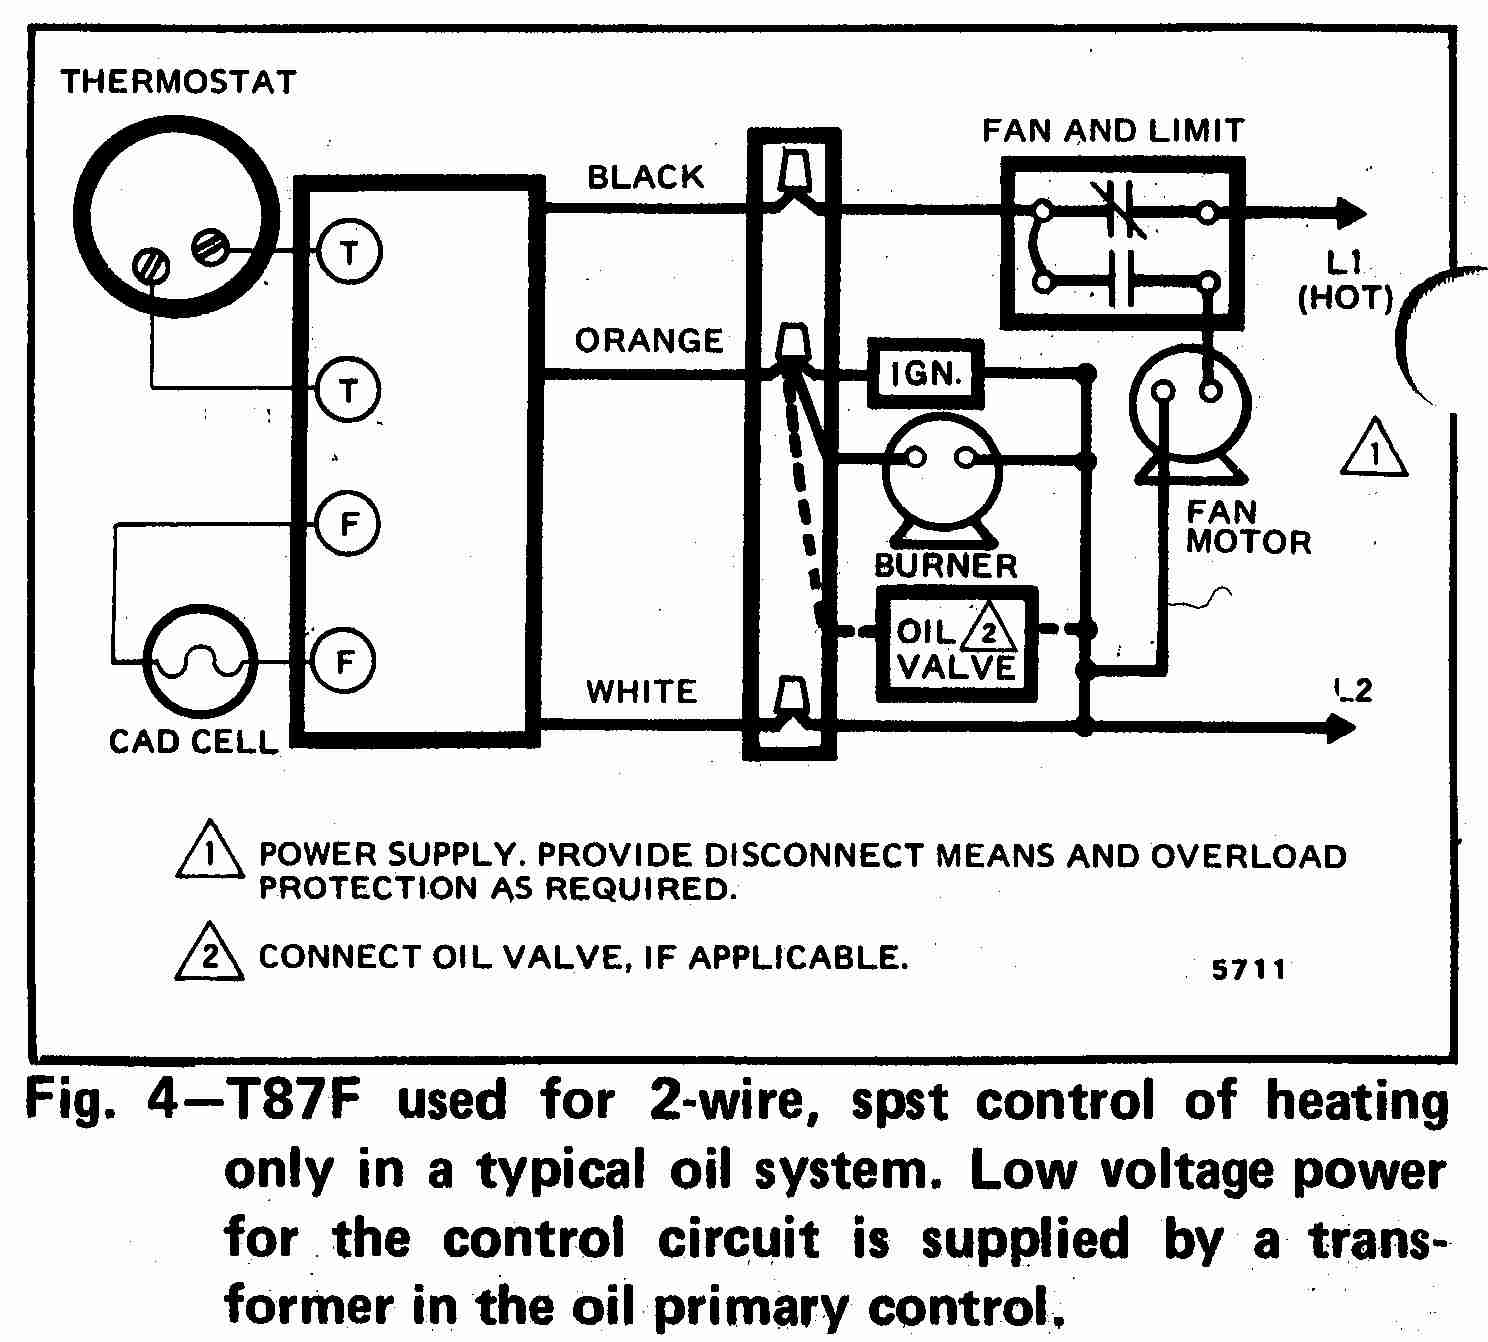 TT_T87F_0002_2W_DJF gas furnace wiring diagram 2006 gas furnace wiring diagram  at readyjetset.co